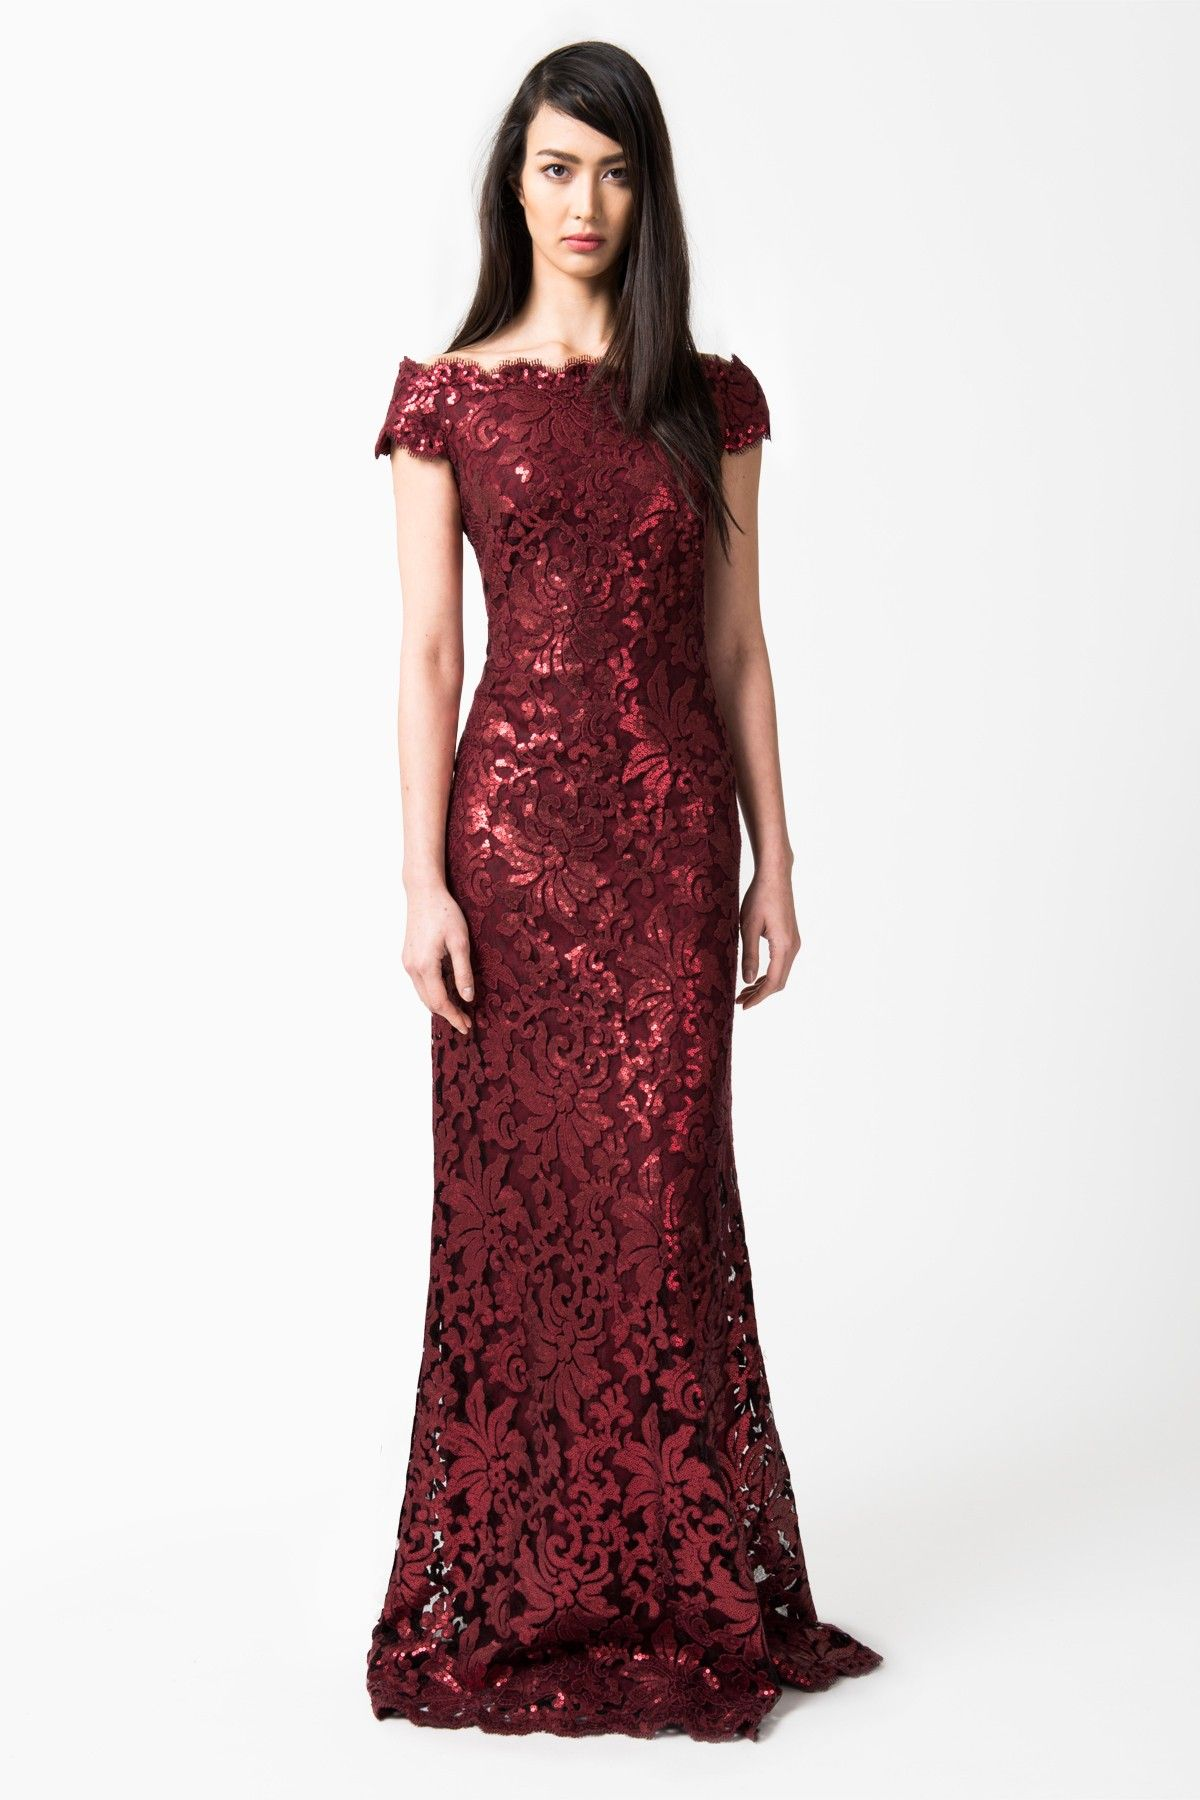 Merlot Lace Cocktail Dress